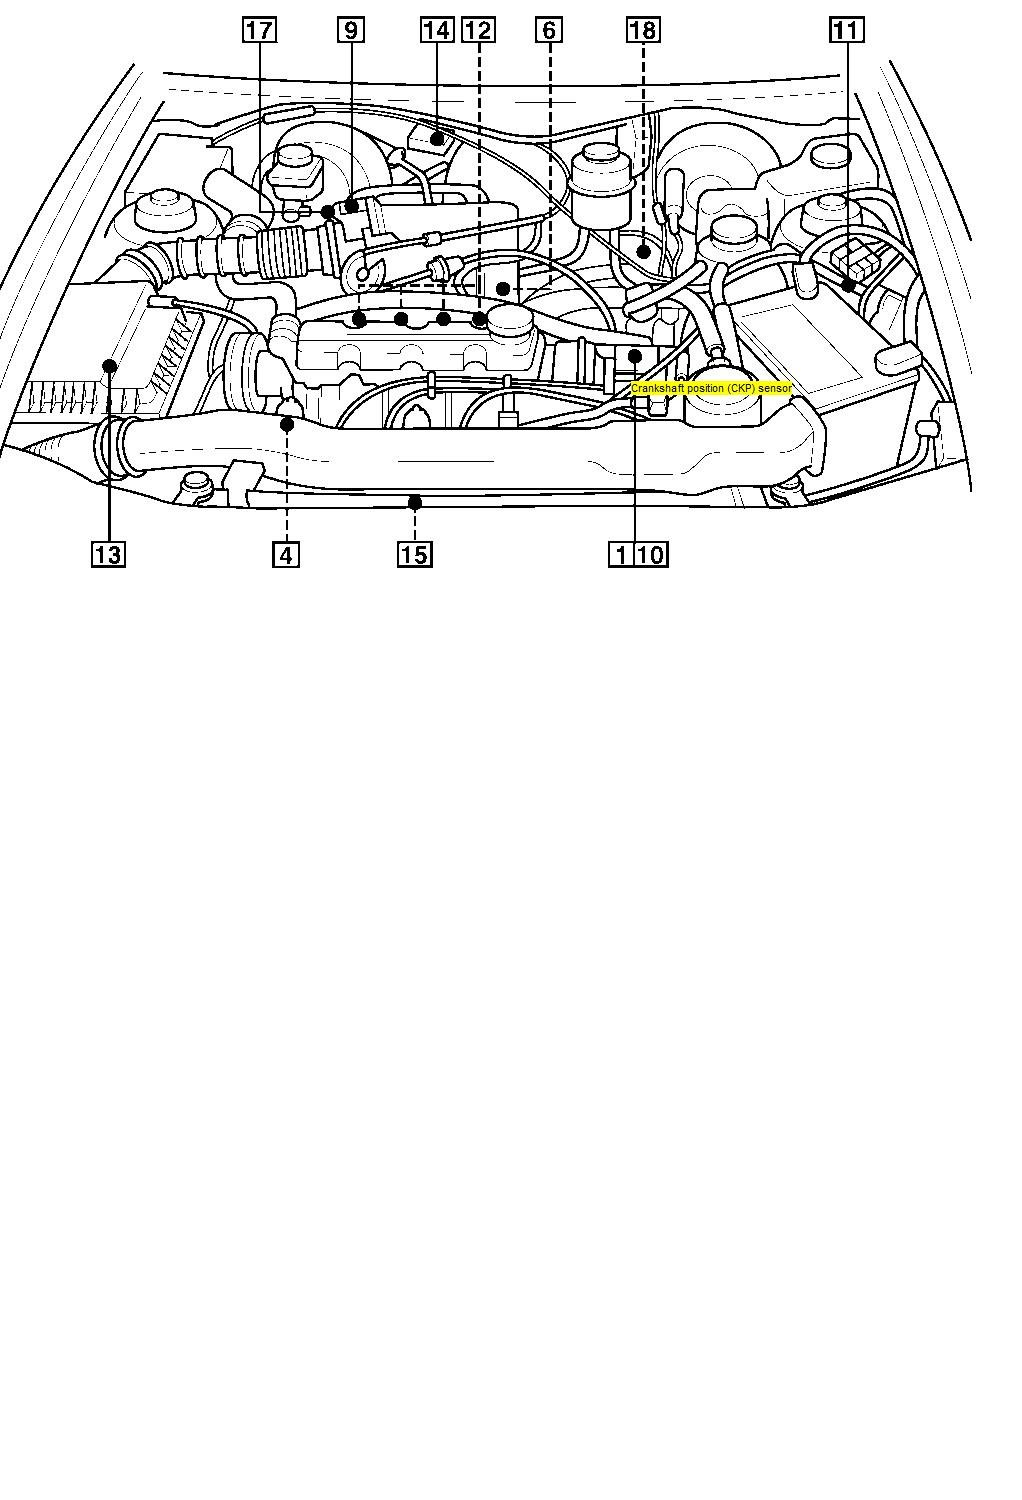 I Have Just Repaced A Clutch In A Daewoo Cielo 97 Model